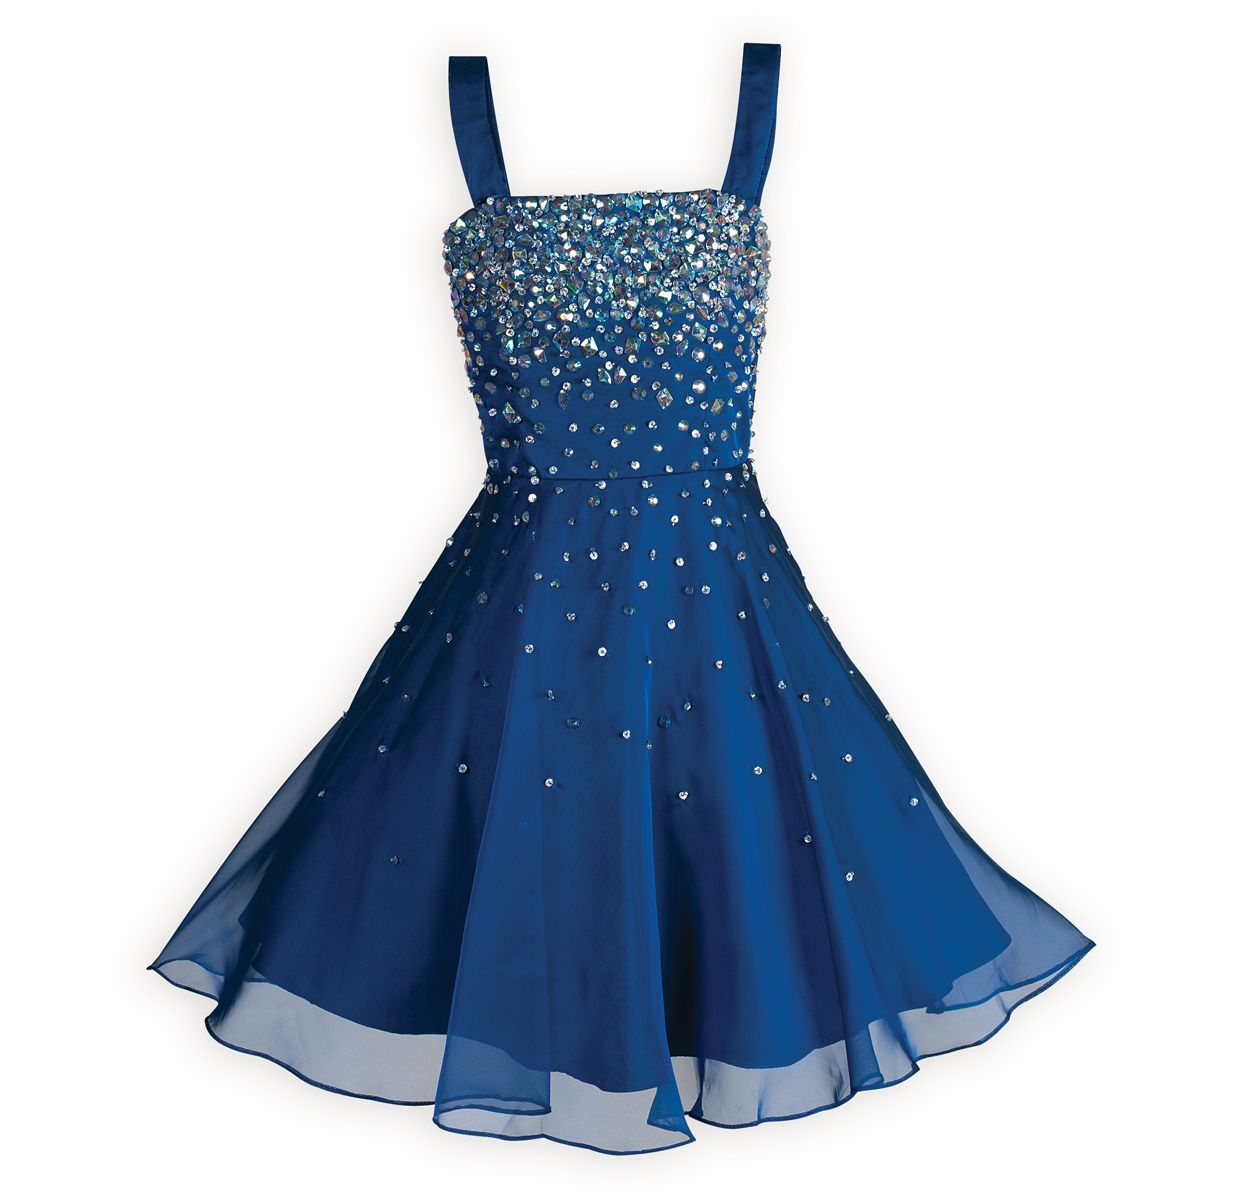 F2701 Jpg 1233 1198 Girls Special Occasion Dresses Girls Party Dress Dresses For Tweens [ 1198 x 1233 Pixel ]